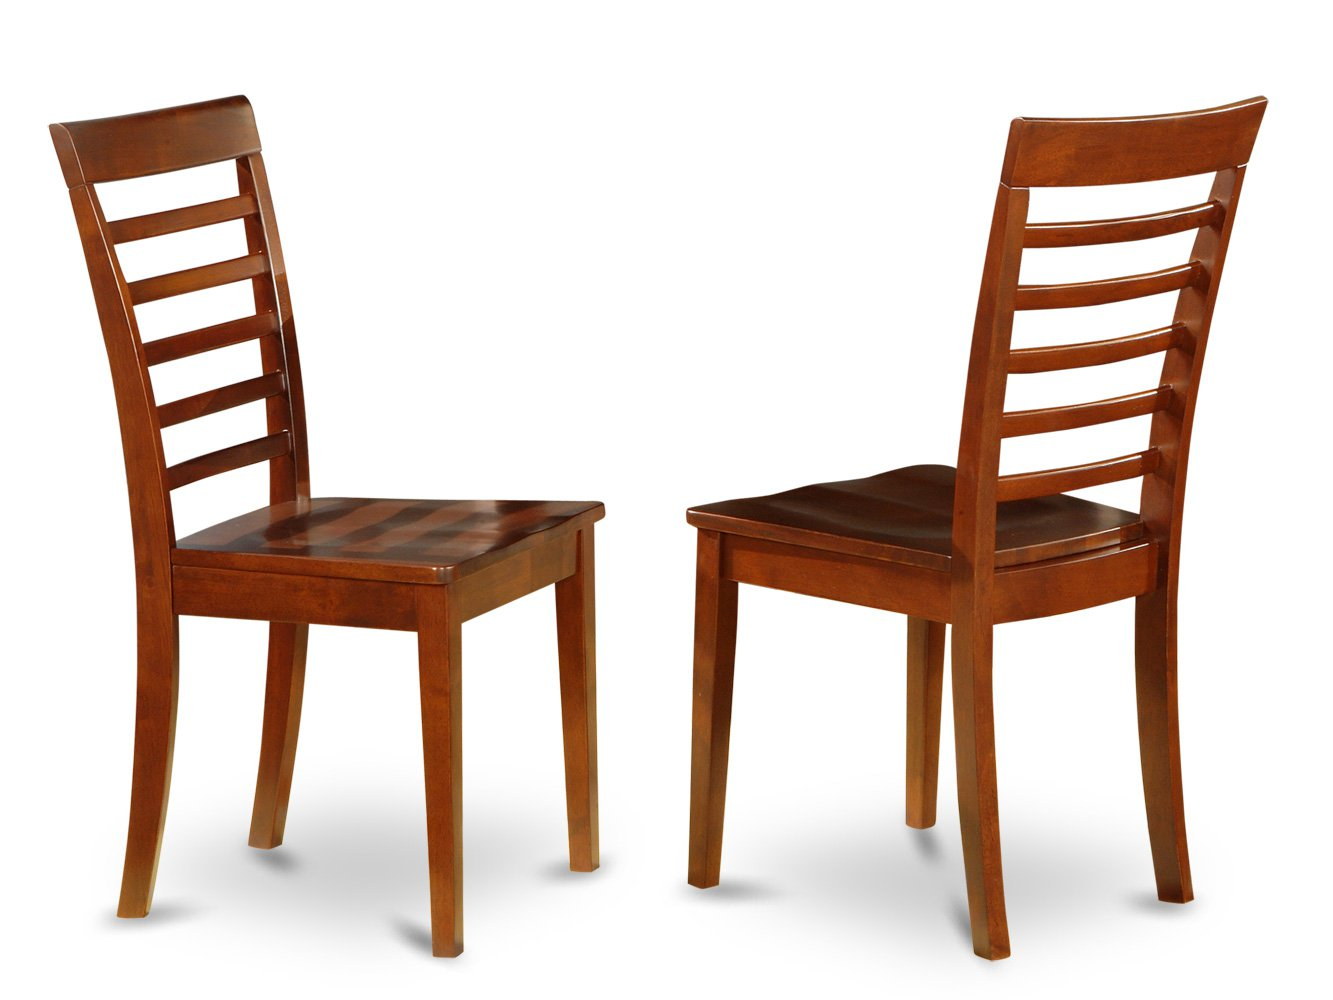 Set of 4 milan ladder slat back dining room chairs with seat in saddle brownfinish - Ladder back dining room chairs ...